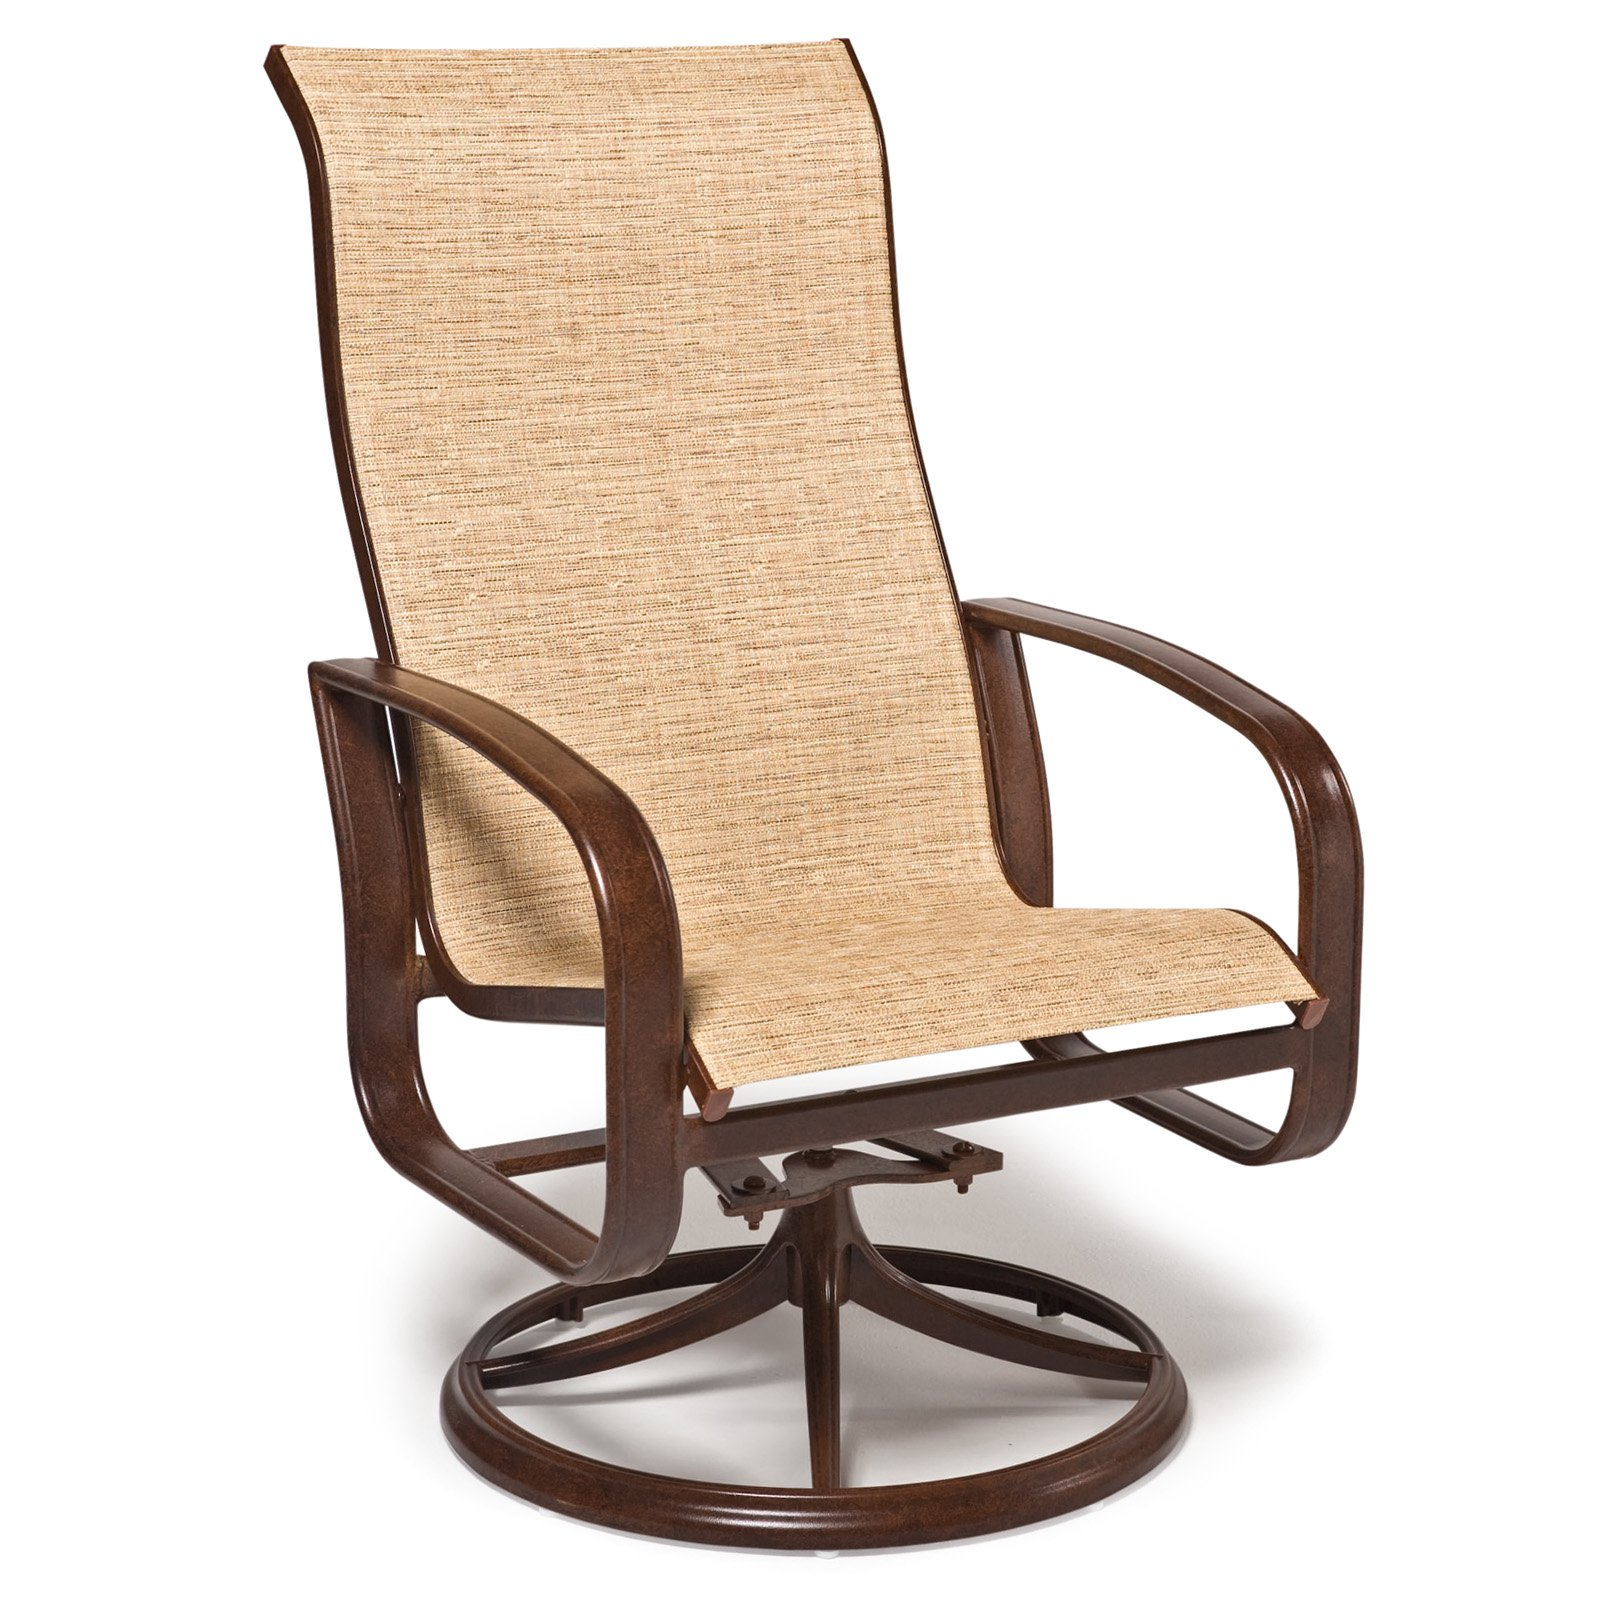 Image of: Luxury Swivel Patio Chair